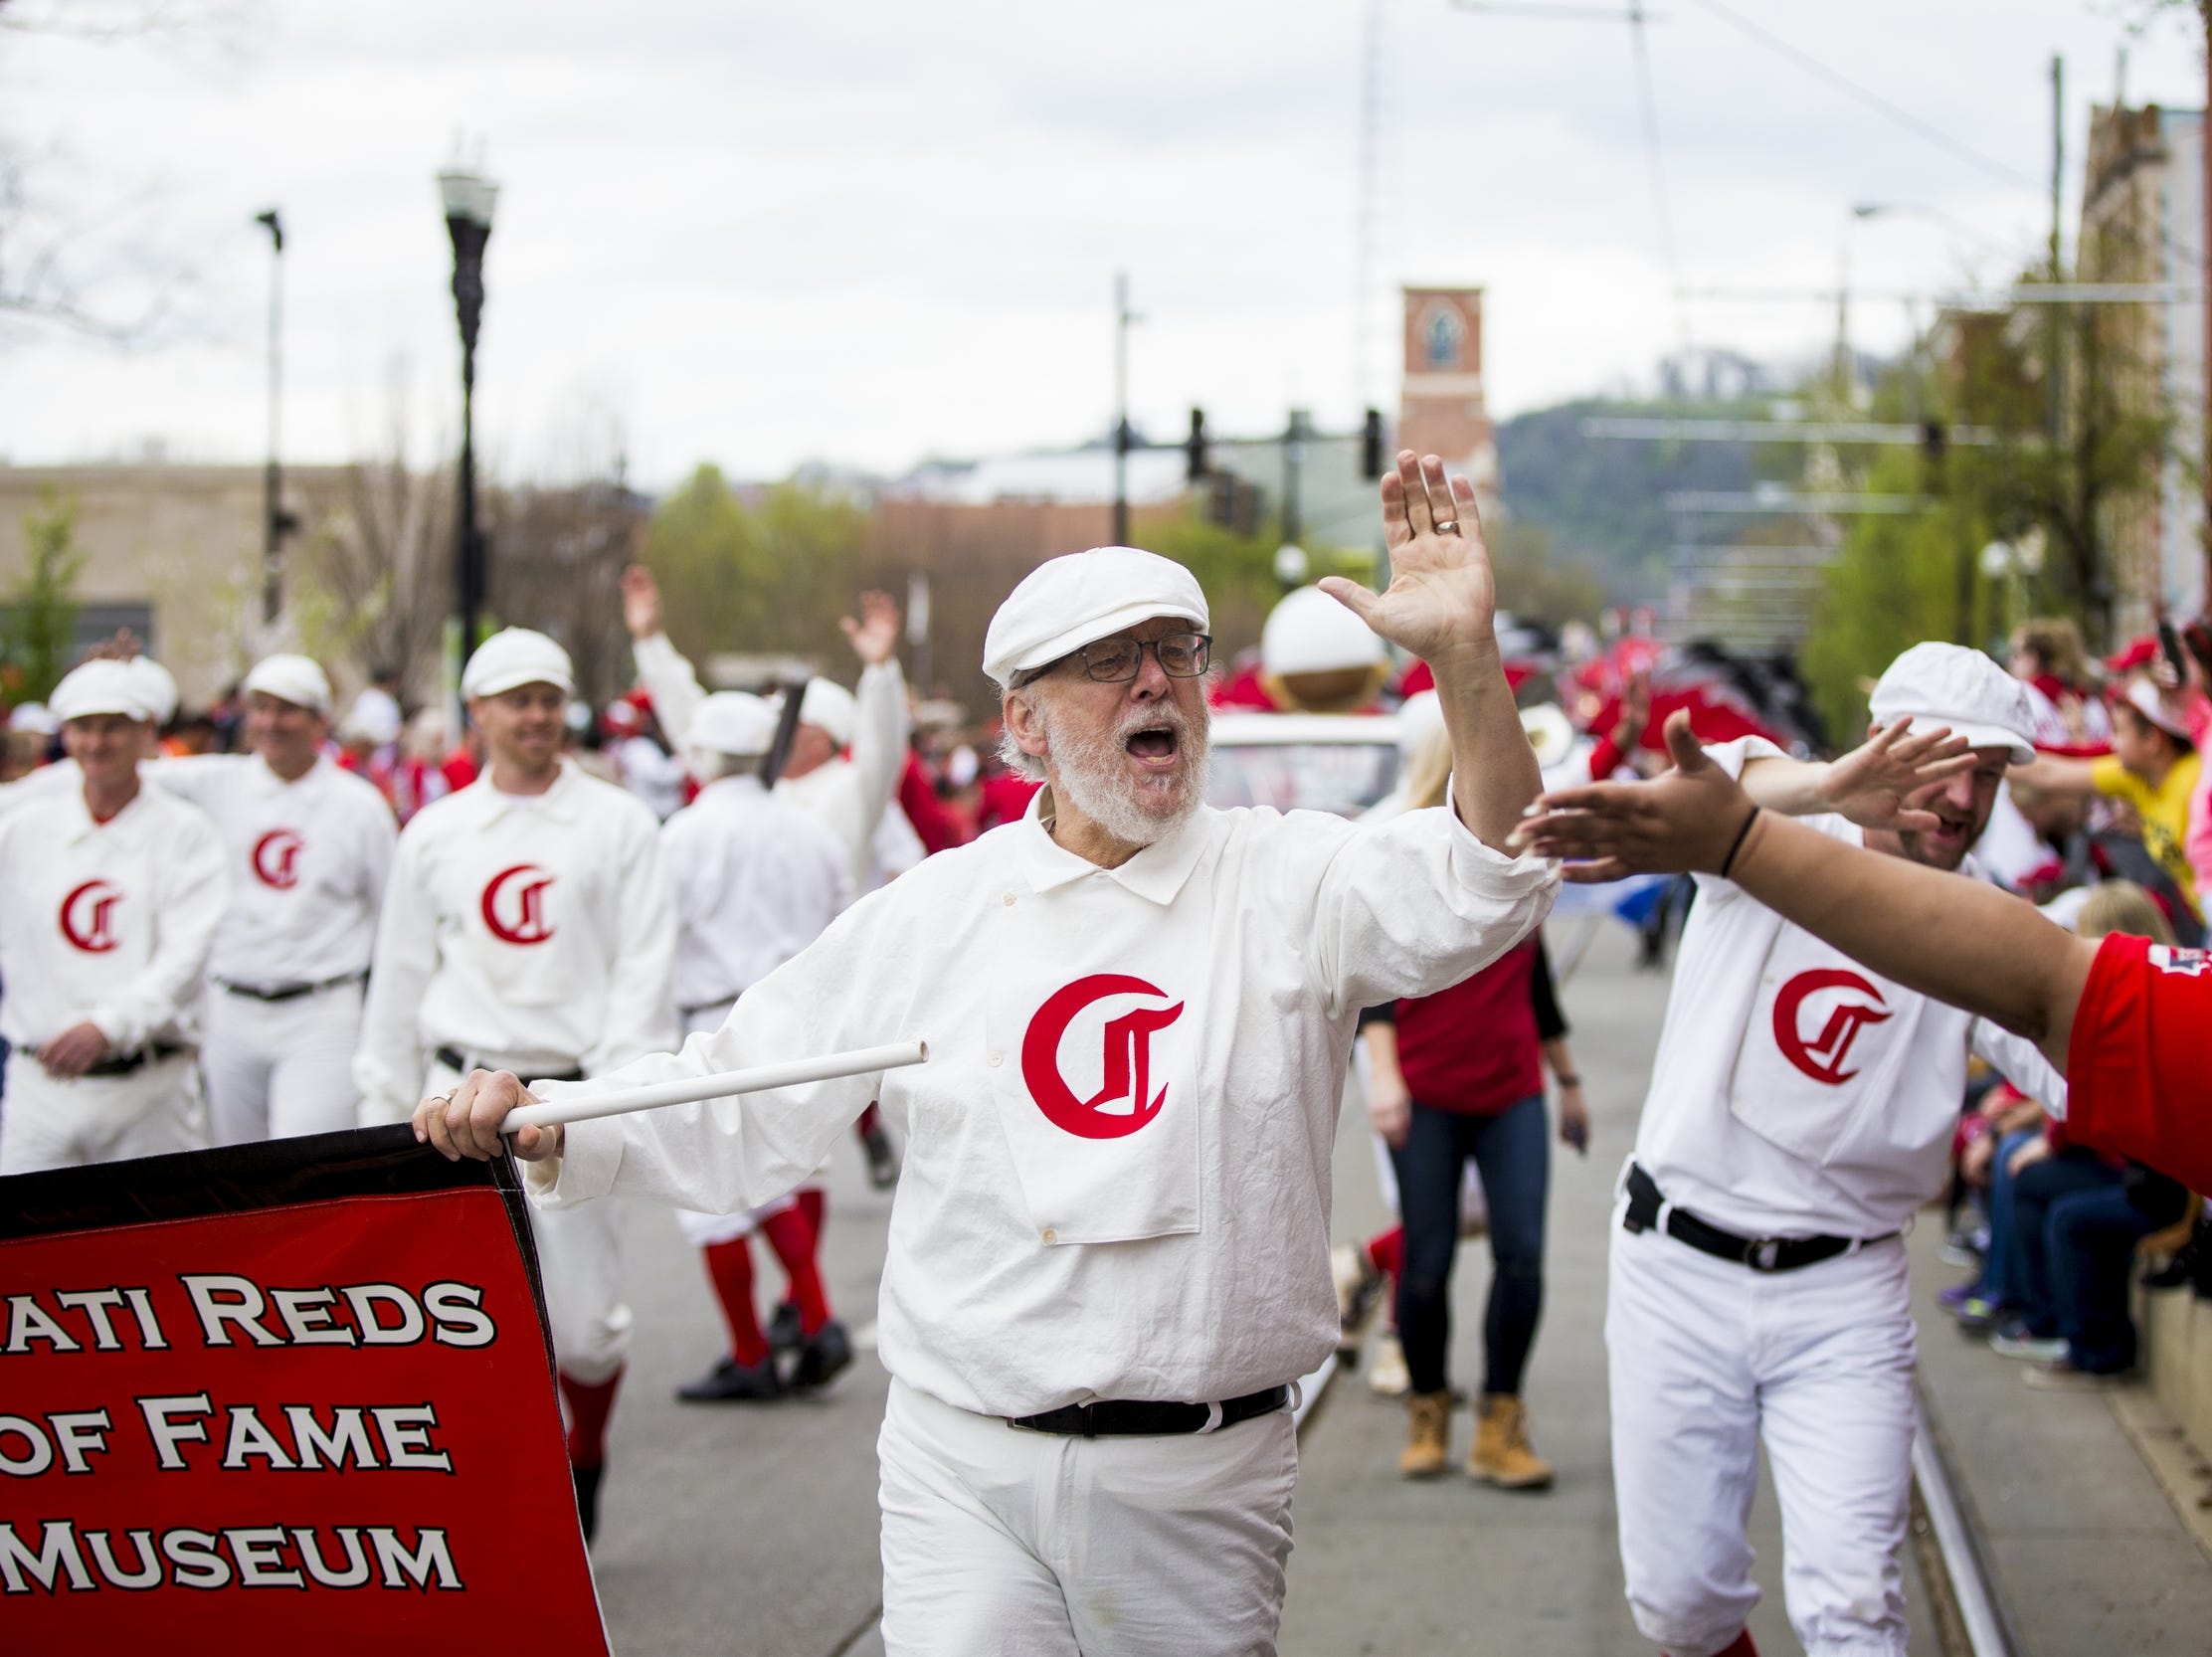 April 3, 2017: Representatives of the Cincinnati Reds Hall of Fame and Museum greet people along the Findlay Market Opening Day parade route.